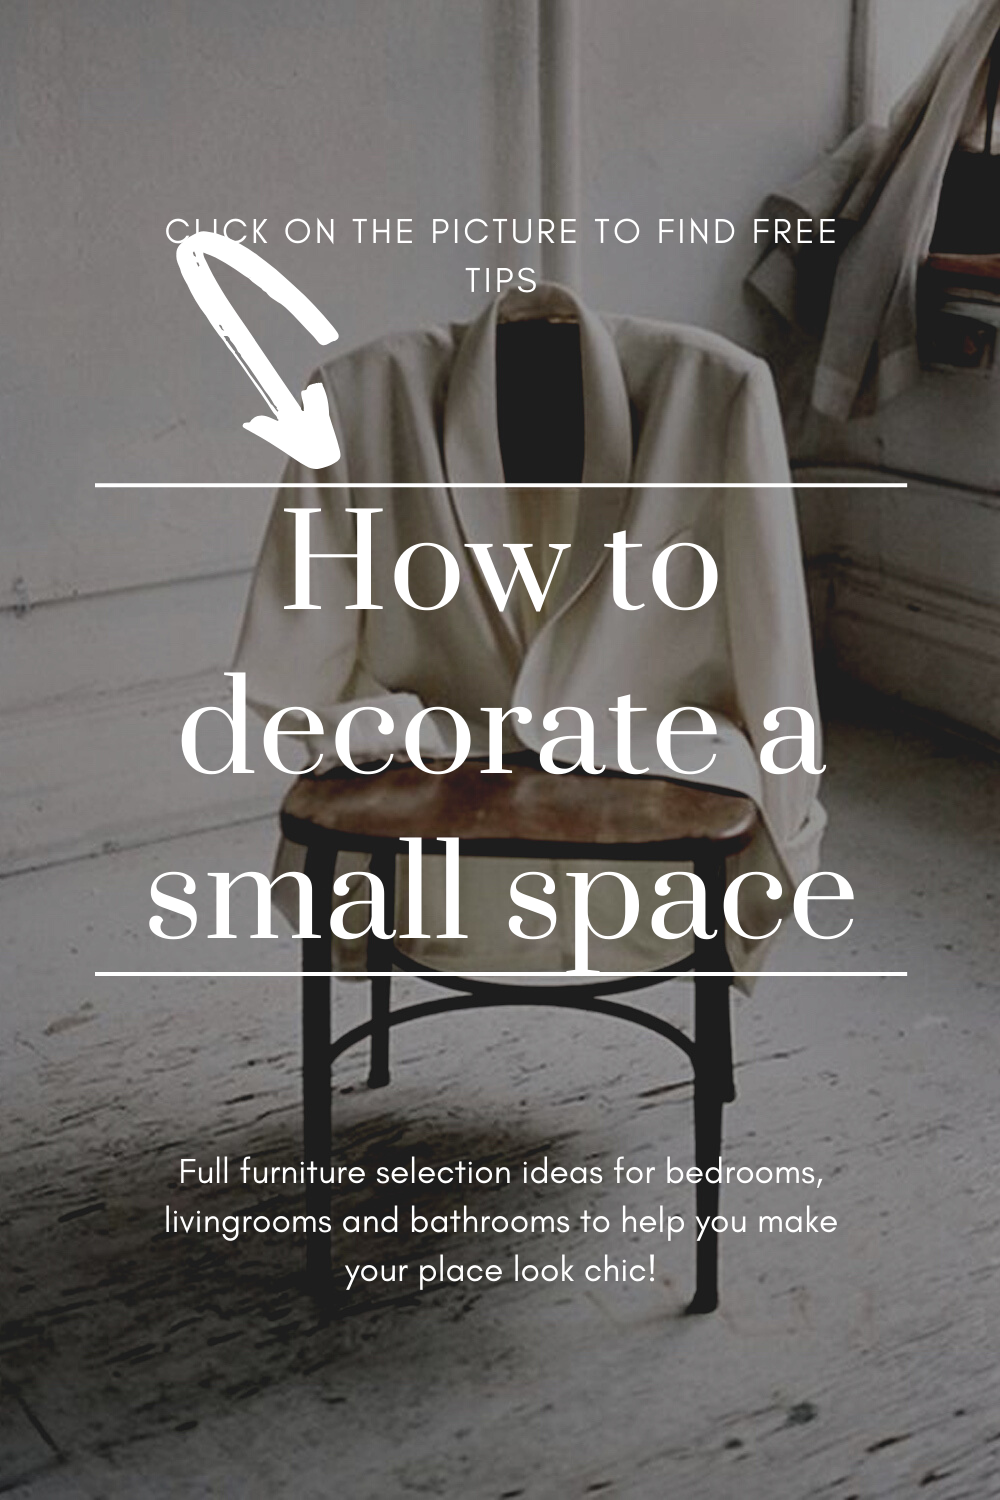 How to decorate a small space?